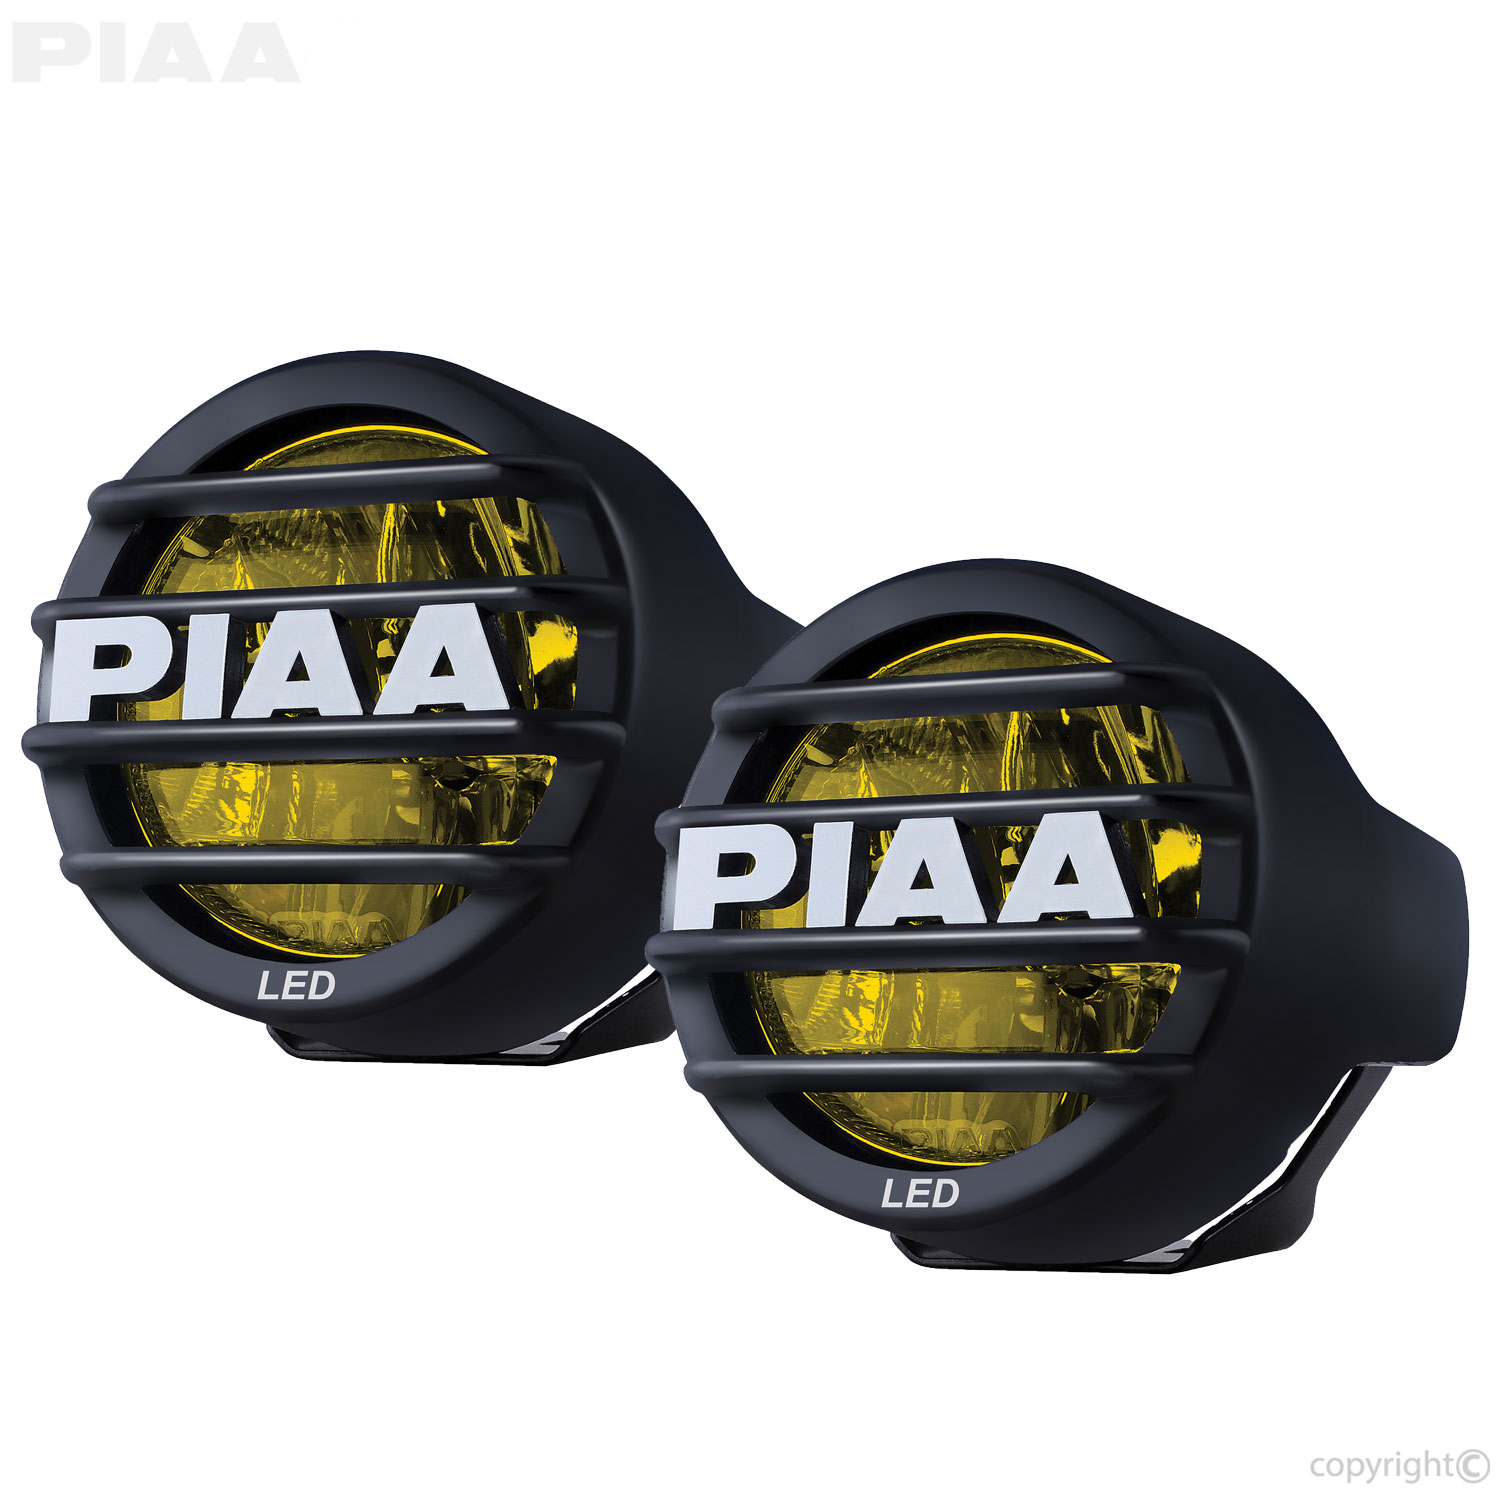 Piaa Fog Light Wiring Harness Home Diagrams Kit Lights And Bracket Kits For Bmw Motorcycles Cover